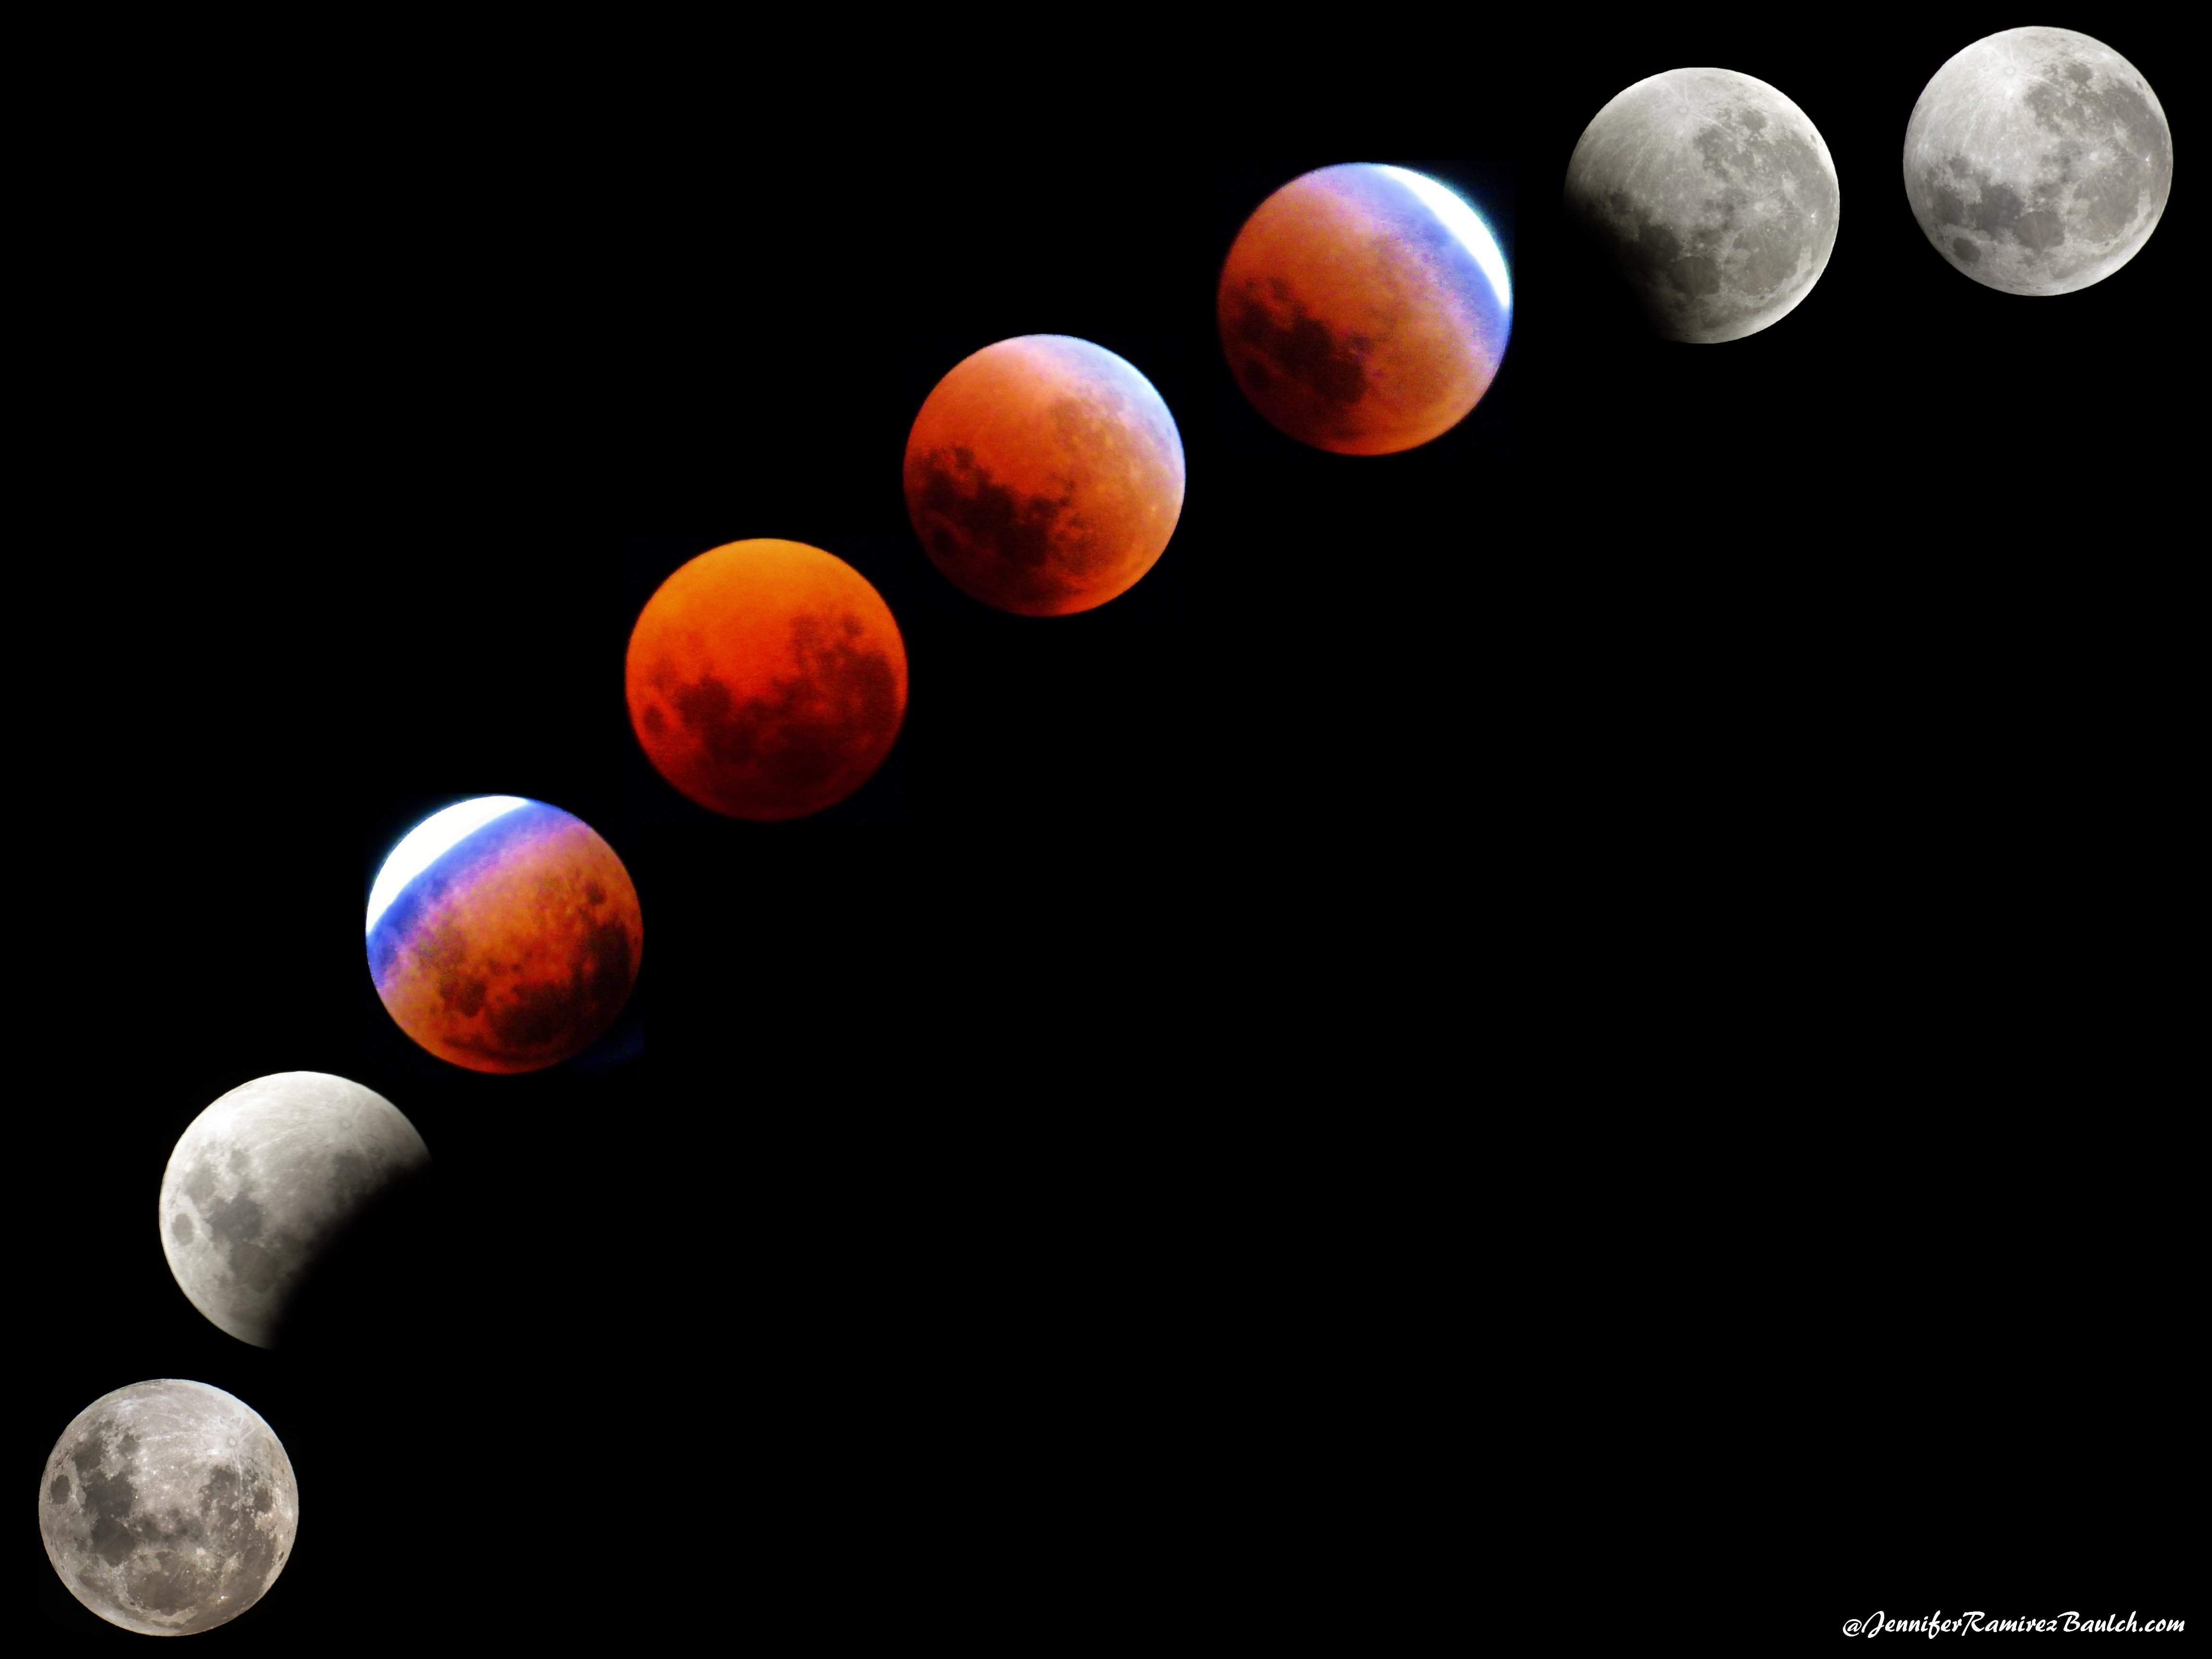 Trifecta Lunar Eclipse Super Blue Blood Moon 2018